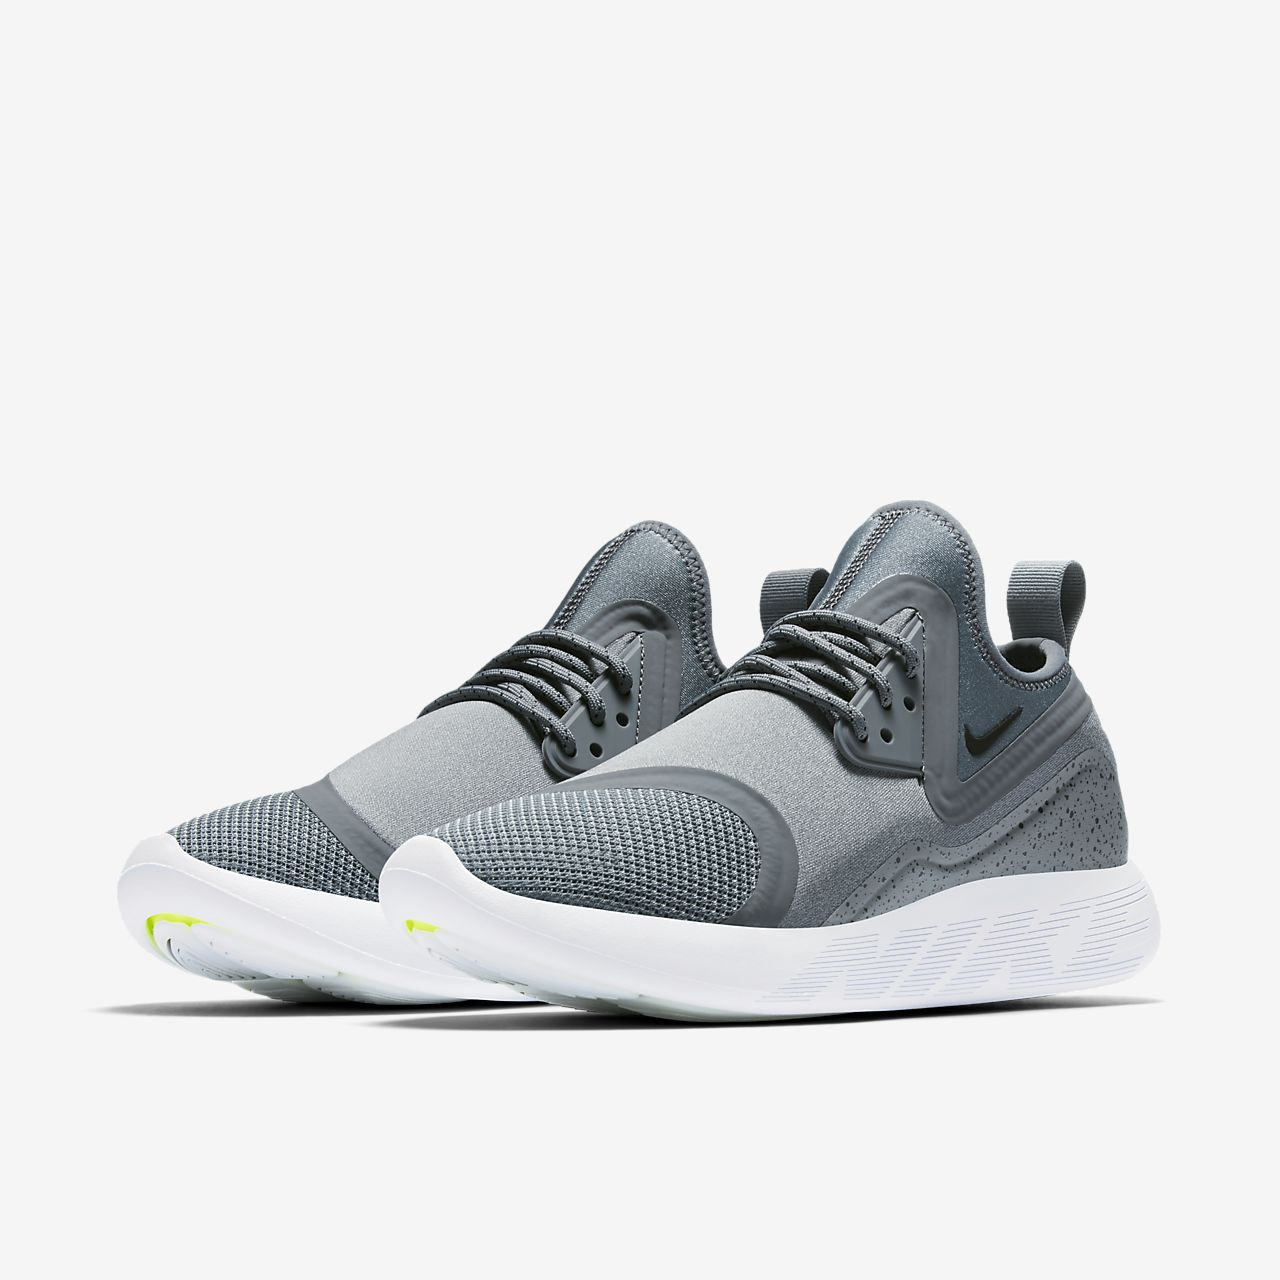 nike lunarcharge essential women 39 s shoe. Black Bedroom Furniture Sets. Home Design Ideas